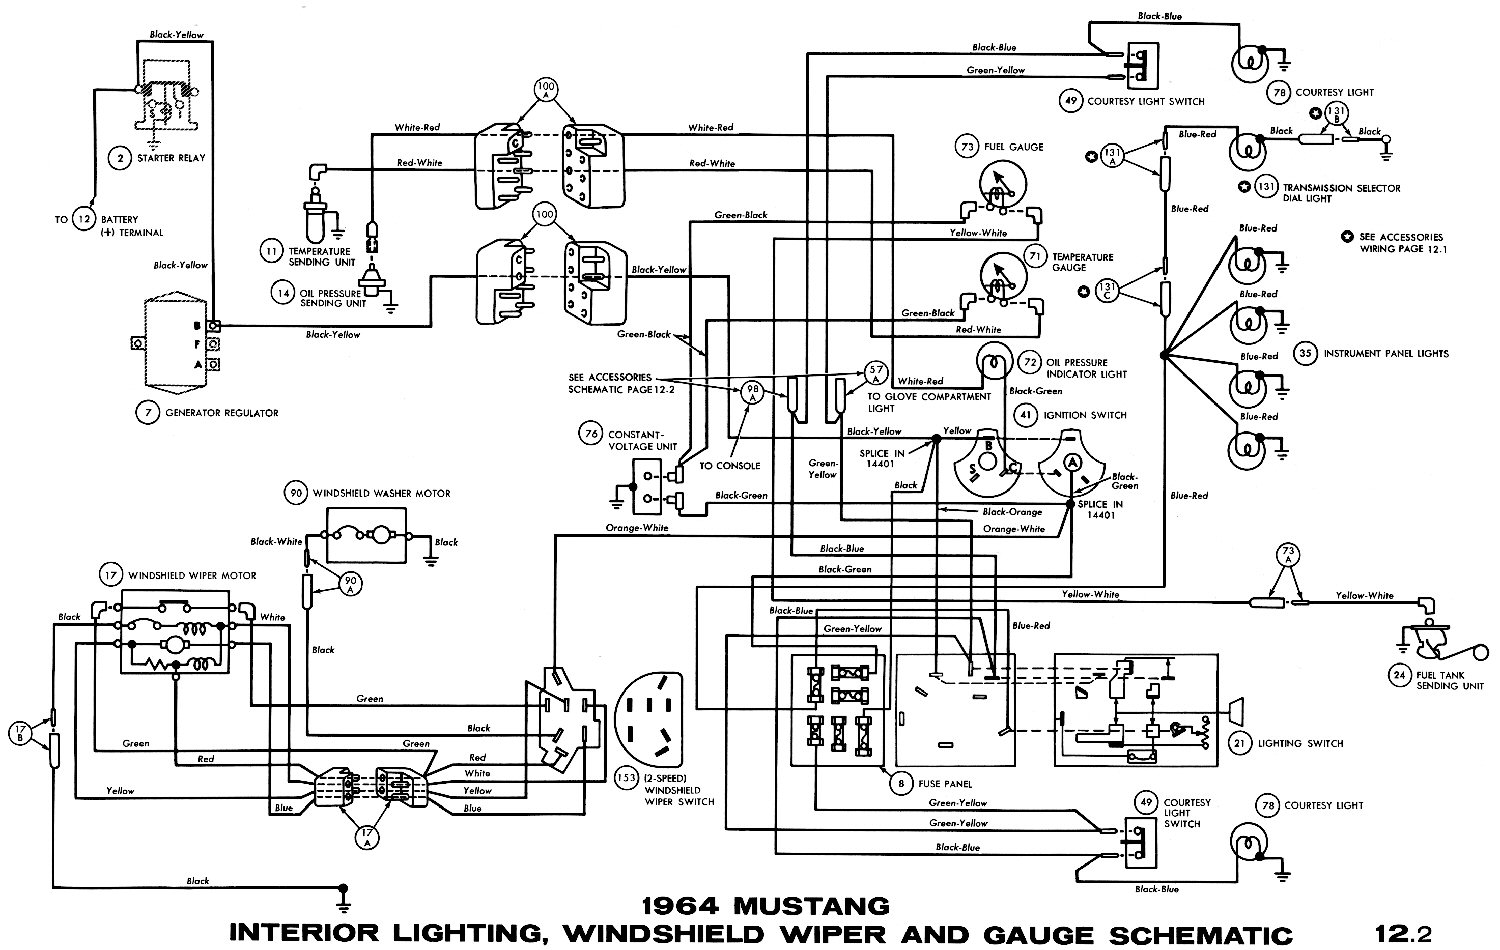 1964 Mustang Interior Lights, Windshield Wiper and Gauges Pictorial or  Schematic. Oil pressure ...